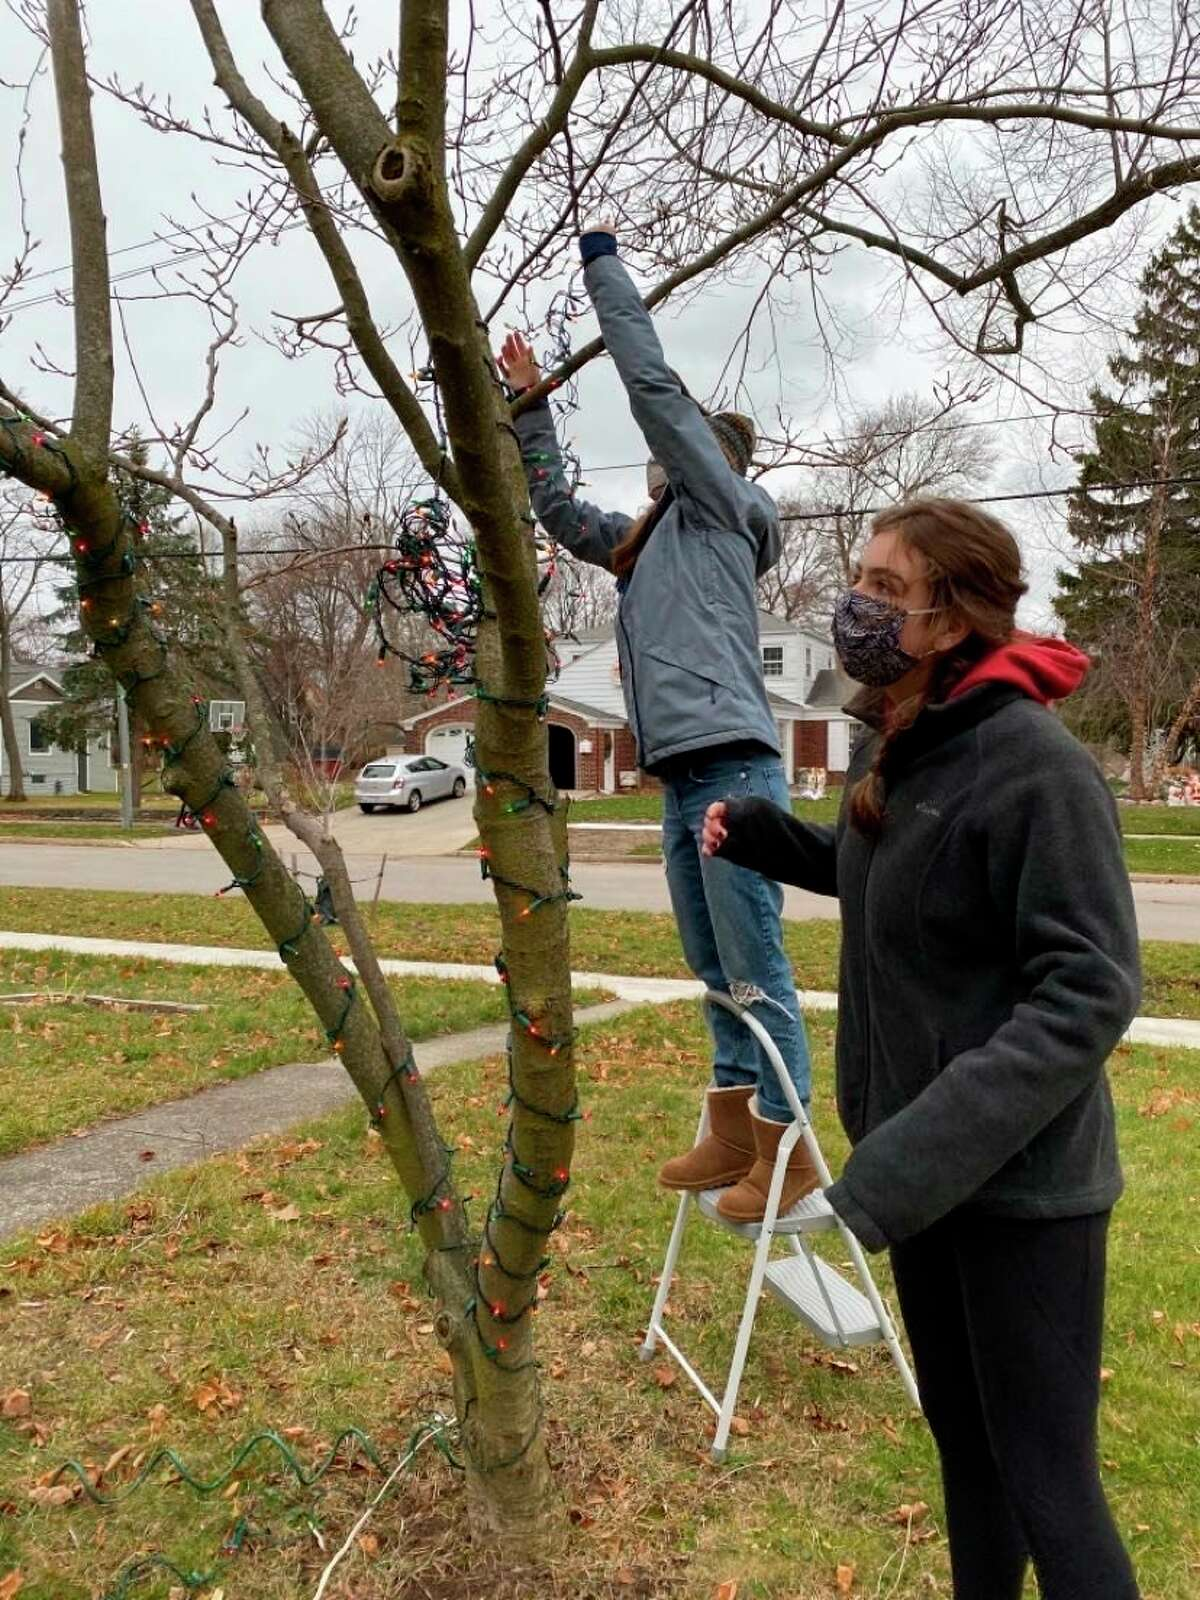 Members ofthe Manistee High School chapter of the National Honor Society put up Christmas decorations for a Manistee resident on Dec. 11 as part of the group's effort to serve the community. (Courtesy photo)